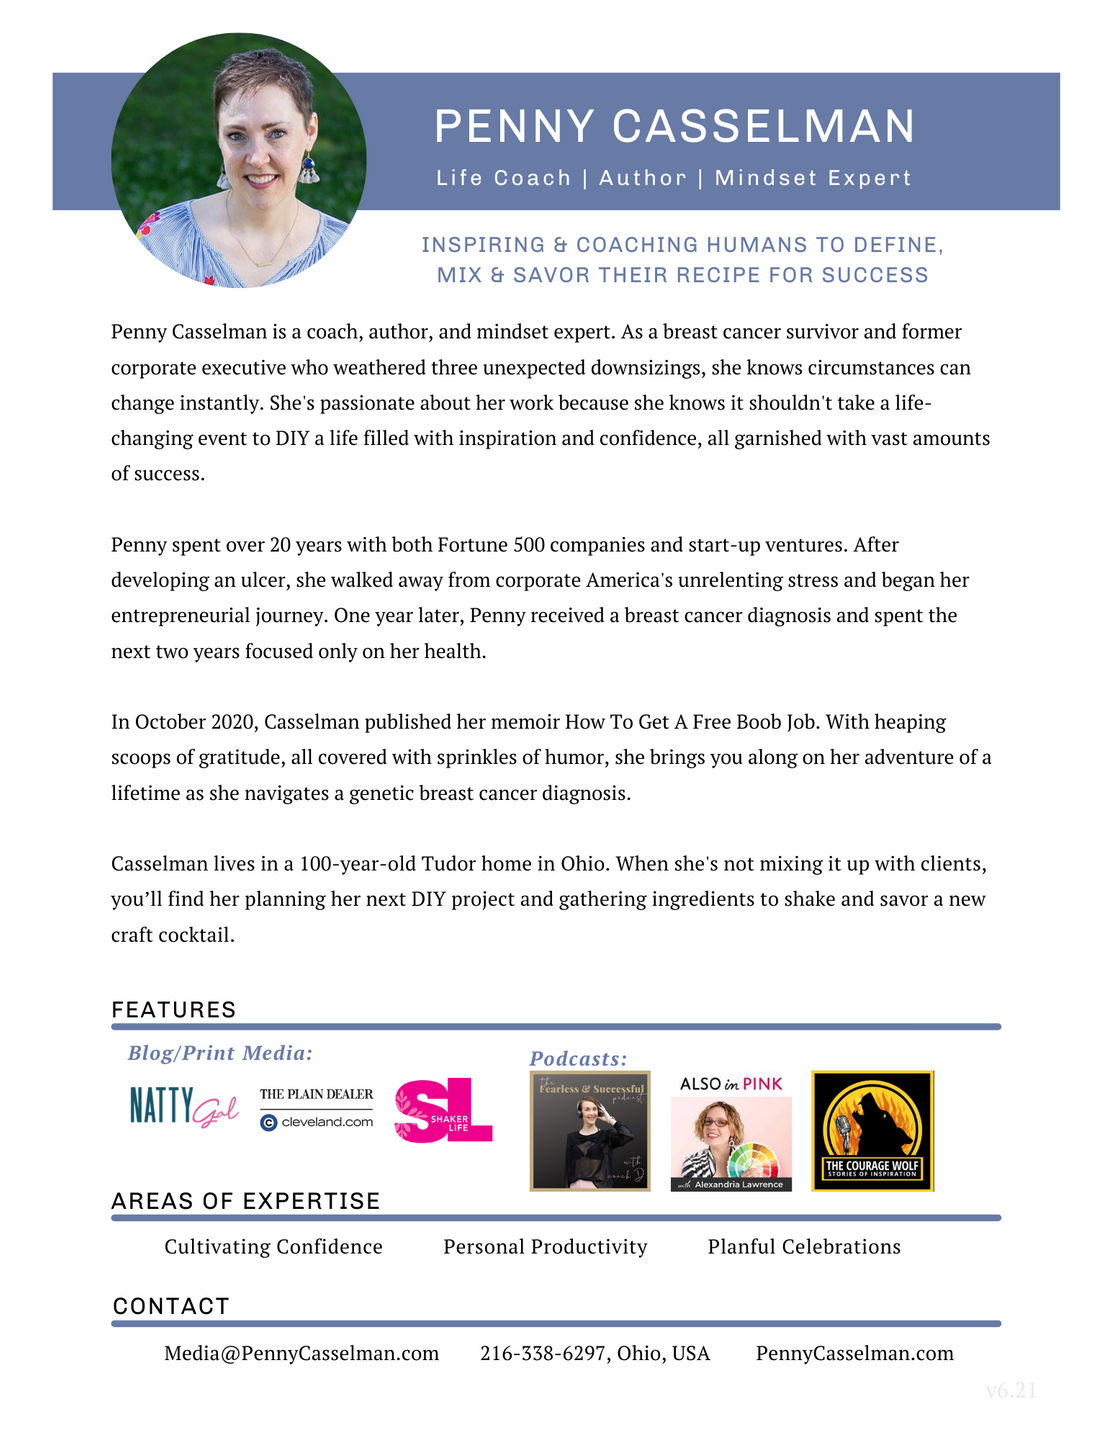 Penny Casselman's Media One-Pager